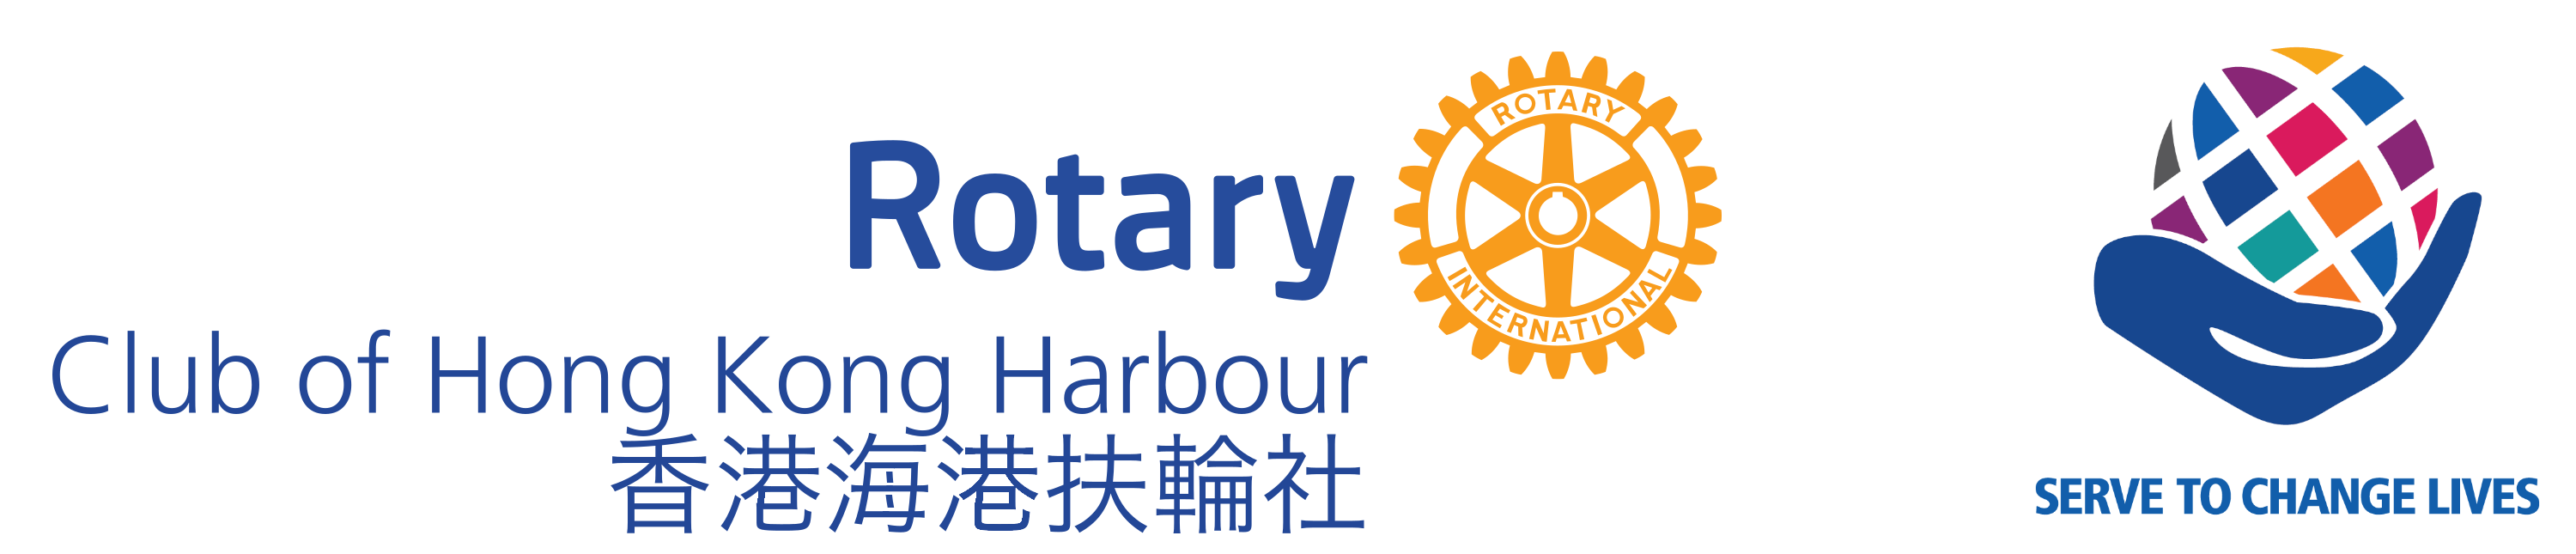 Rotary Club of Hong Kong Harbour